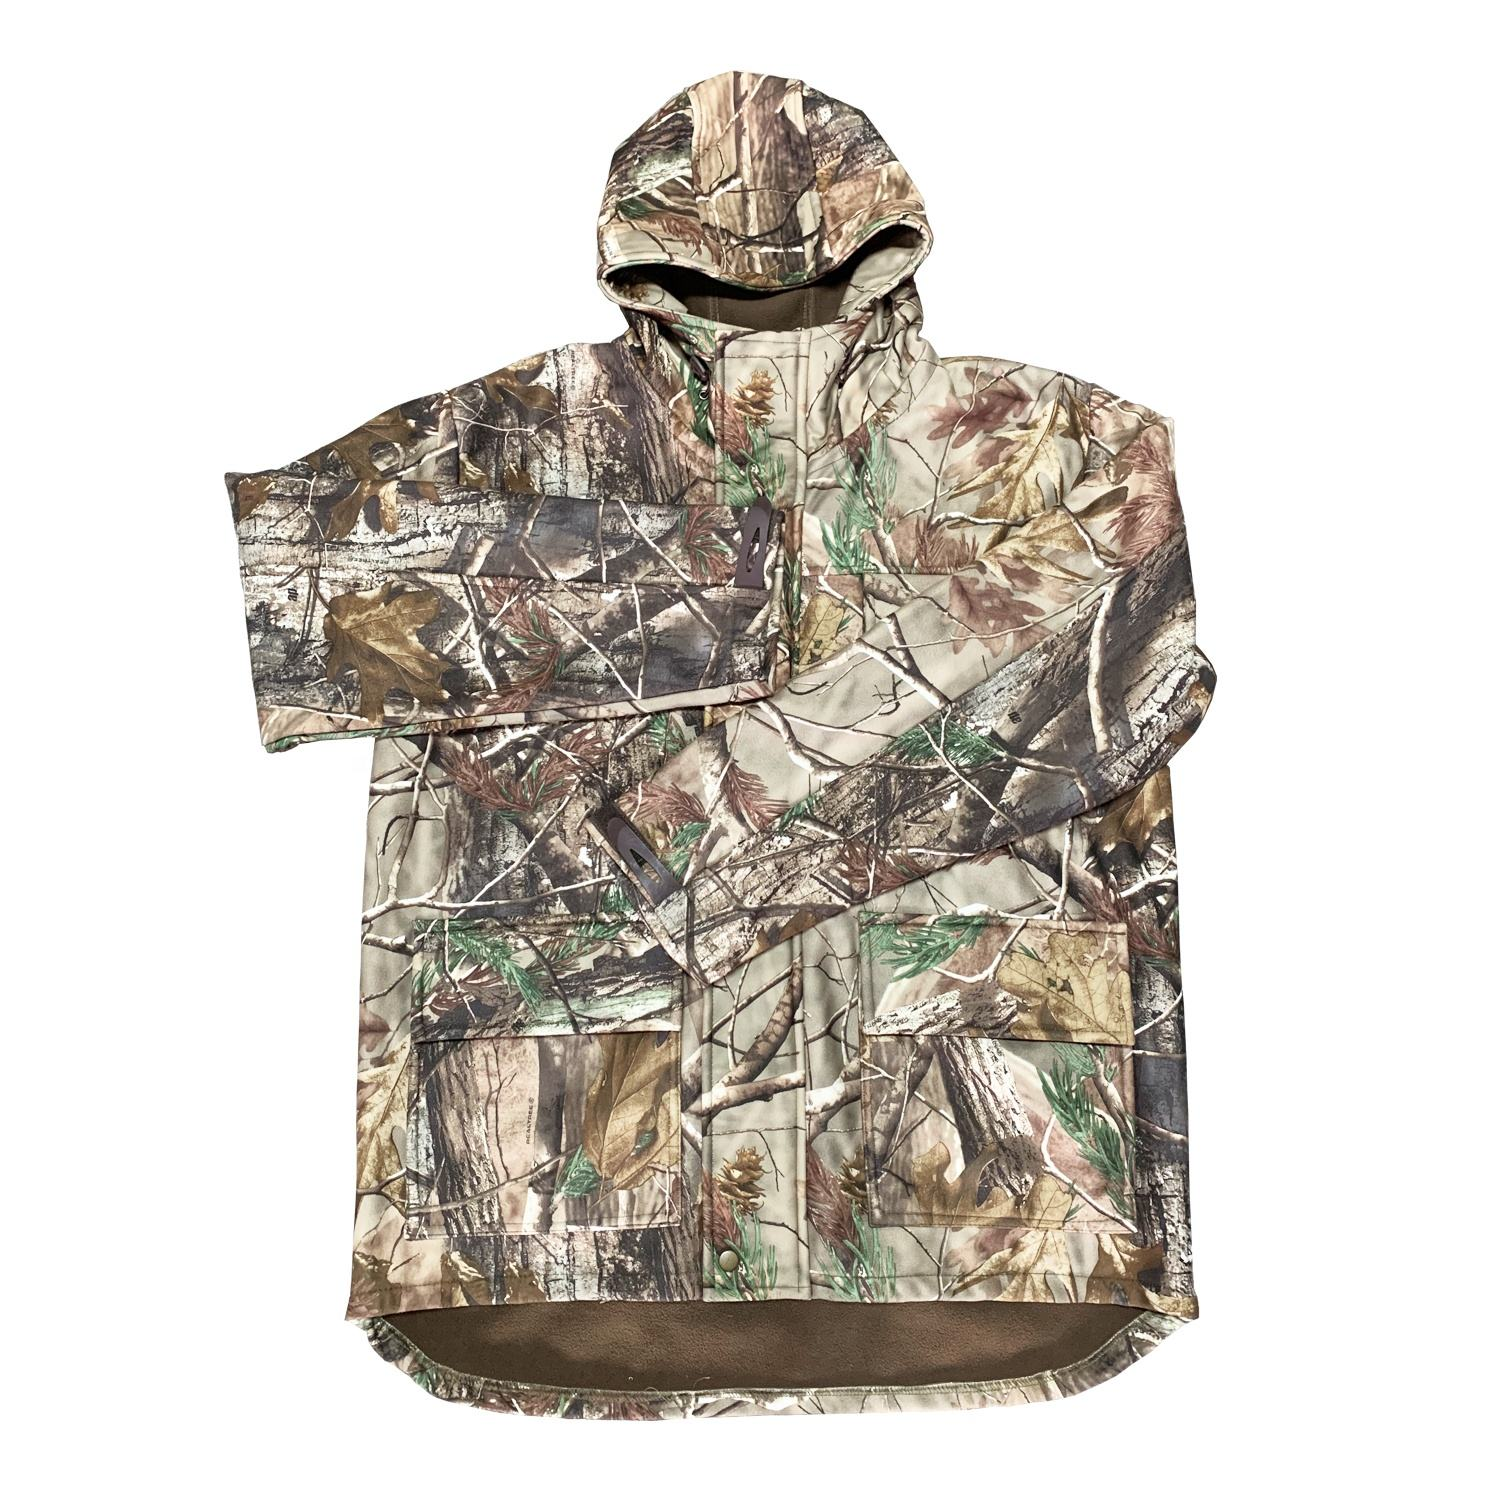 Camouflage hunting clothing hunting winter clothes suits for hunting from BJ Outdoor